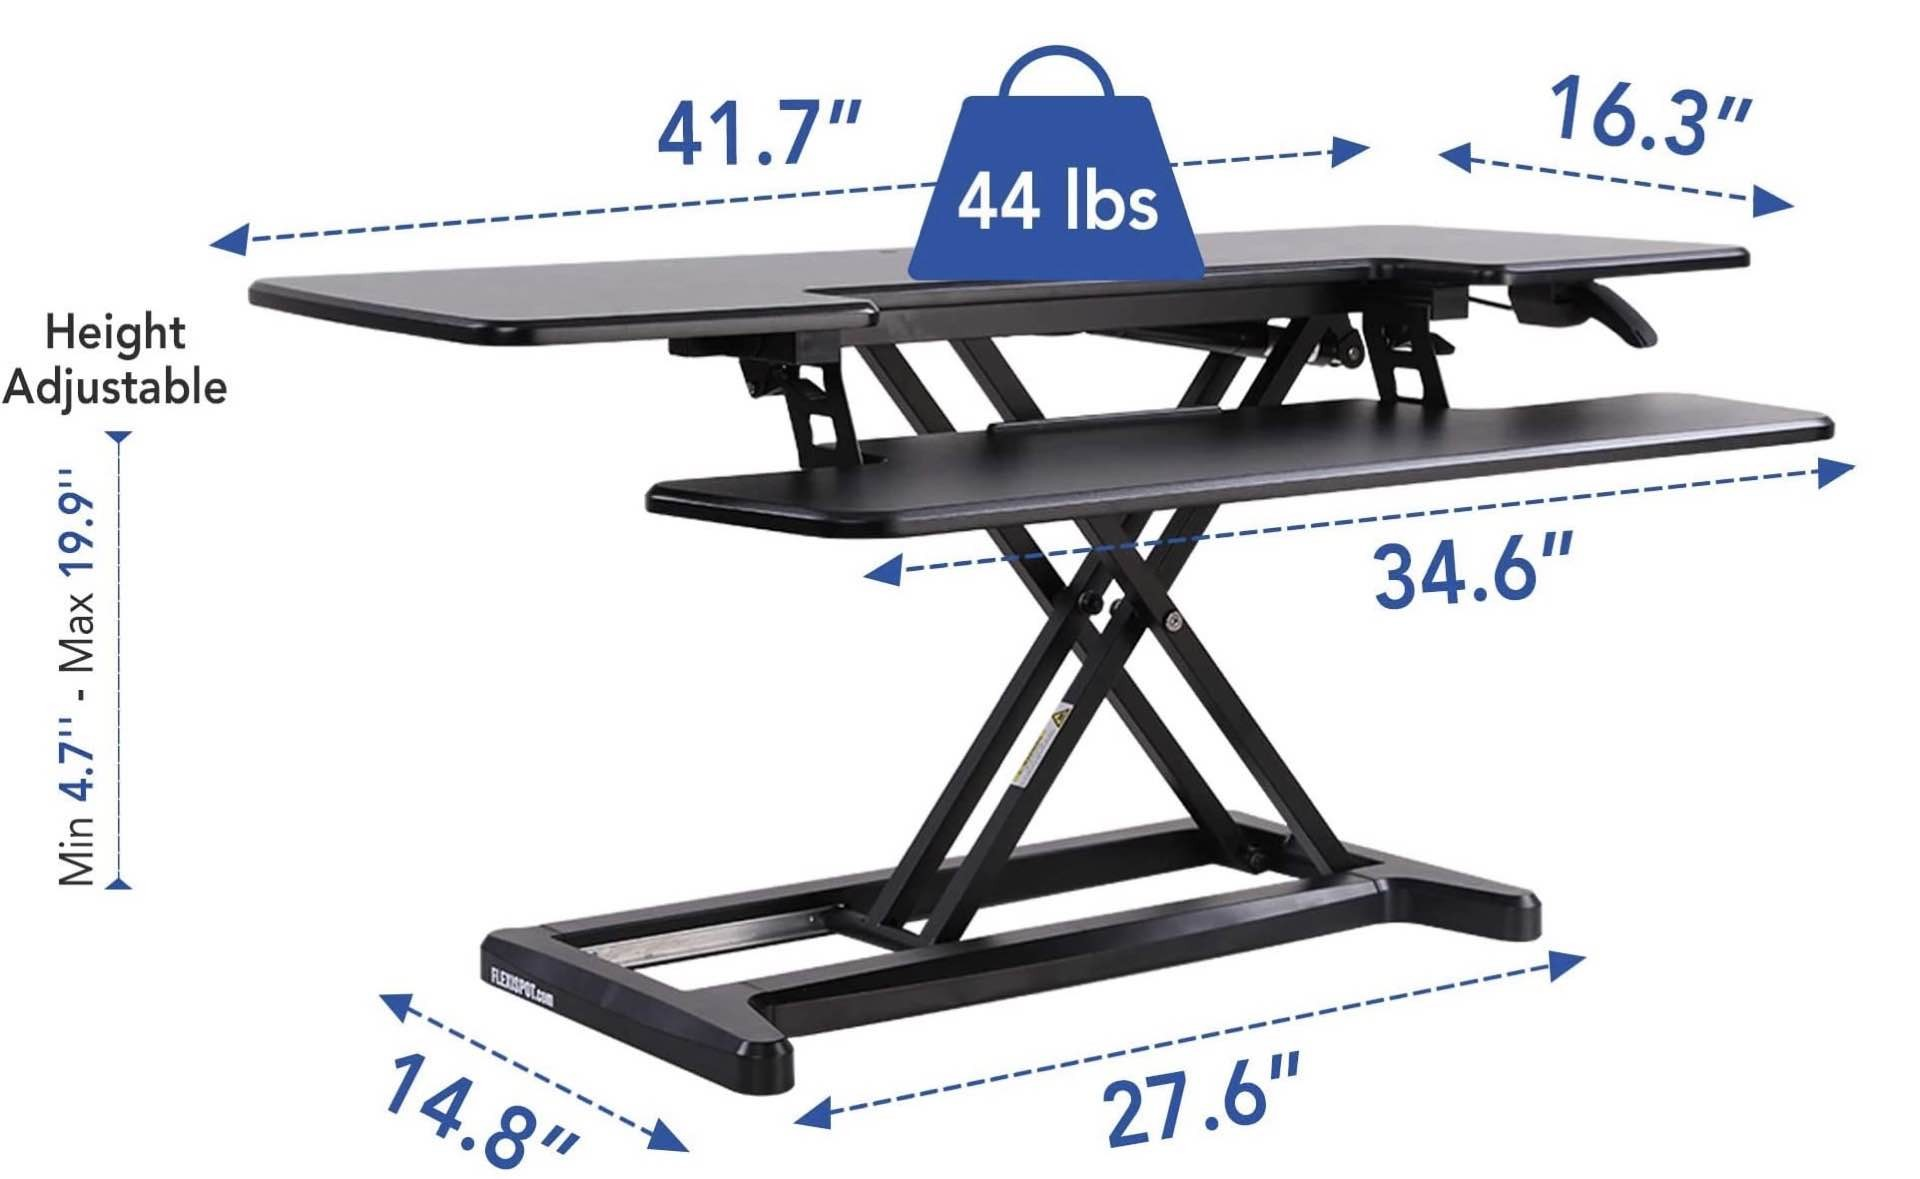 Shown here are the specs for the large 42-inch desk converter.